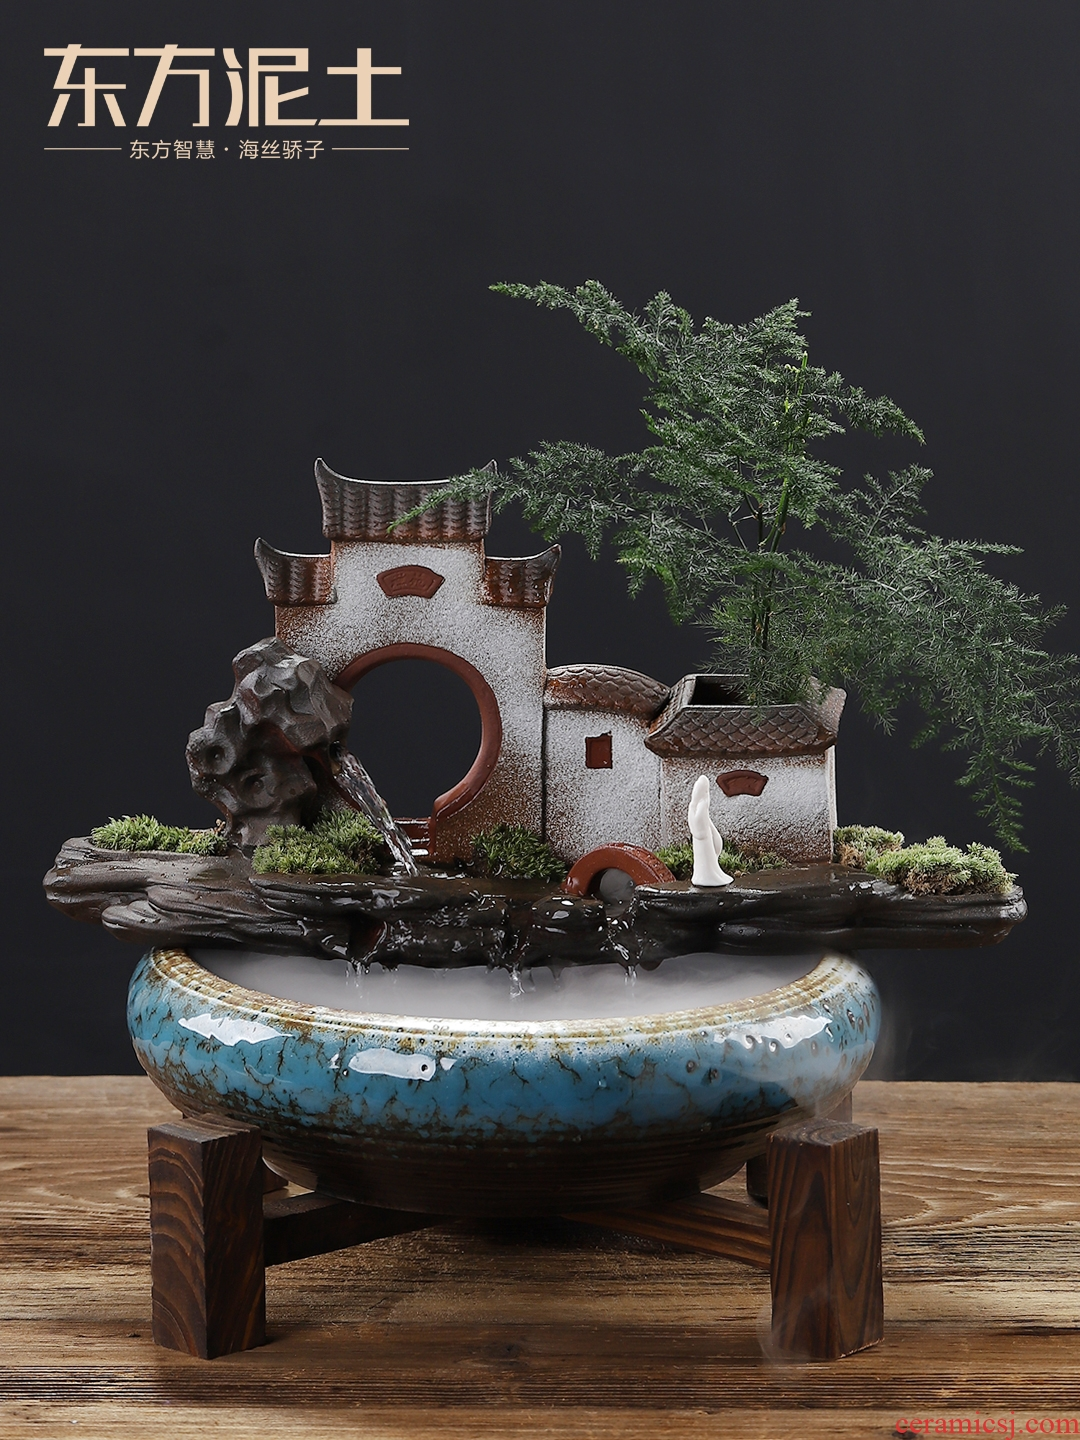 Oriental clay ceramic feng shui plutus furnishing articles household indoor TV ark, sitting room aquarium water humidification ornaments